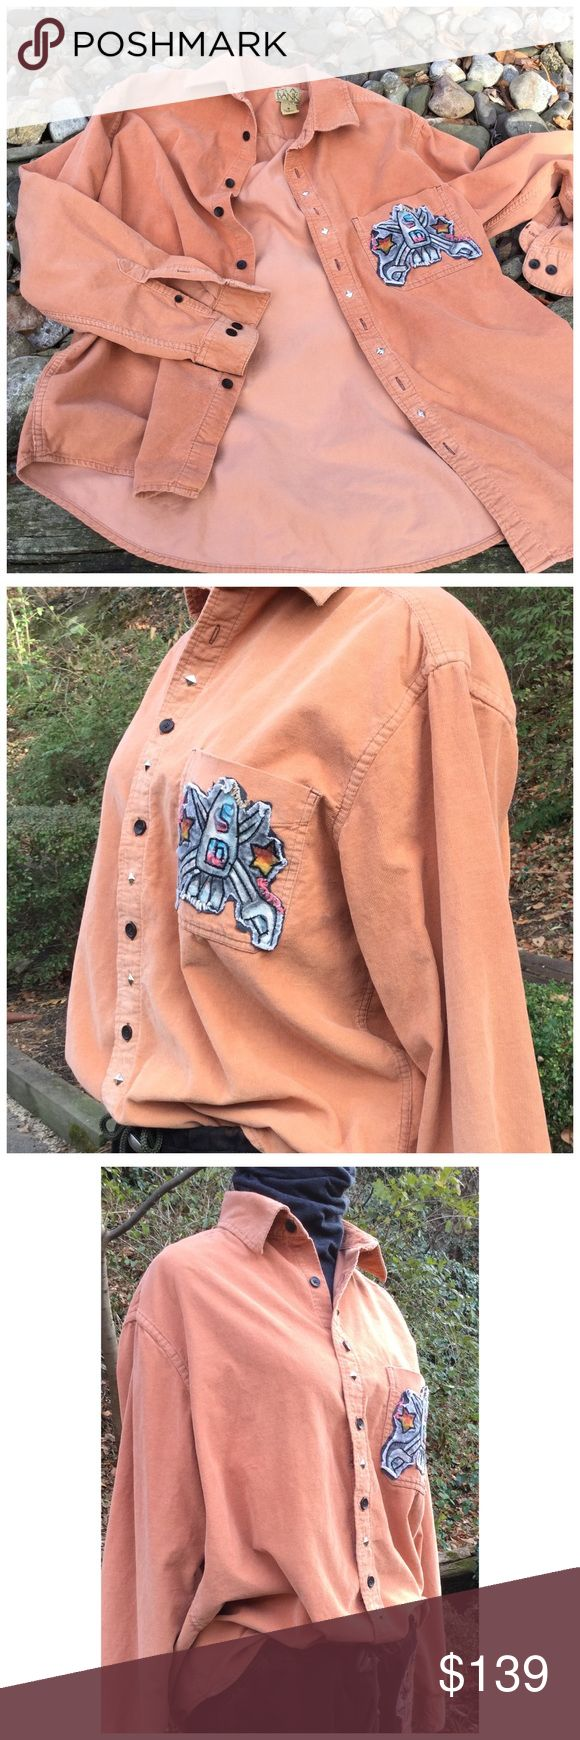 """Rocket (Wo)Man Studded Cord Shirt This is a re-imagined Joseph A Banks men's cord shirt. Bleached, studded with a graffiti rocket appliqué. Men's size M but its shrunk so will fit a woman's M or oversized small. Approx 21"""" pit to pit, 26"""" - 30"""" long at longest point. 18"""" shoulder. Soft, peachy color. Measurements to come. Pants available in closet too DezChic Tops Button Down Shirts"""